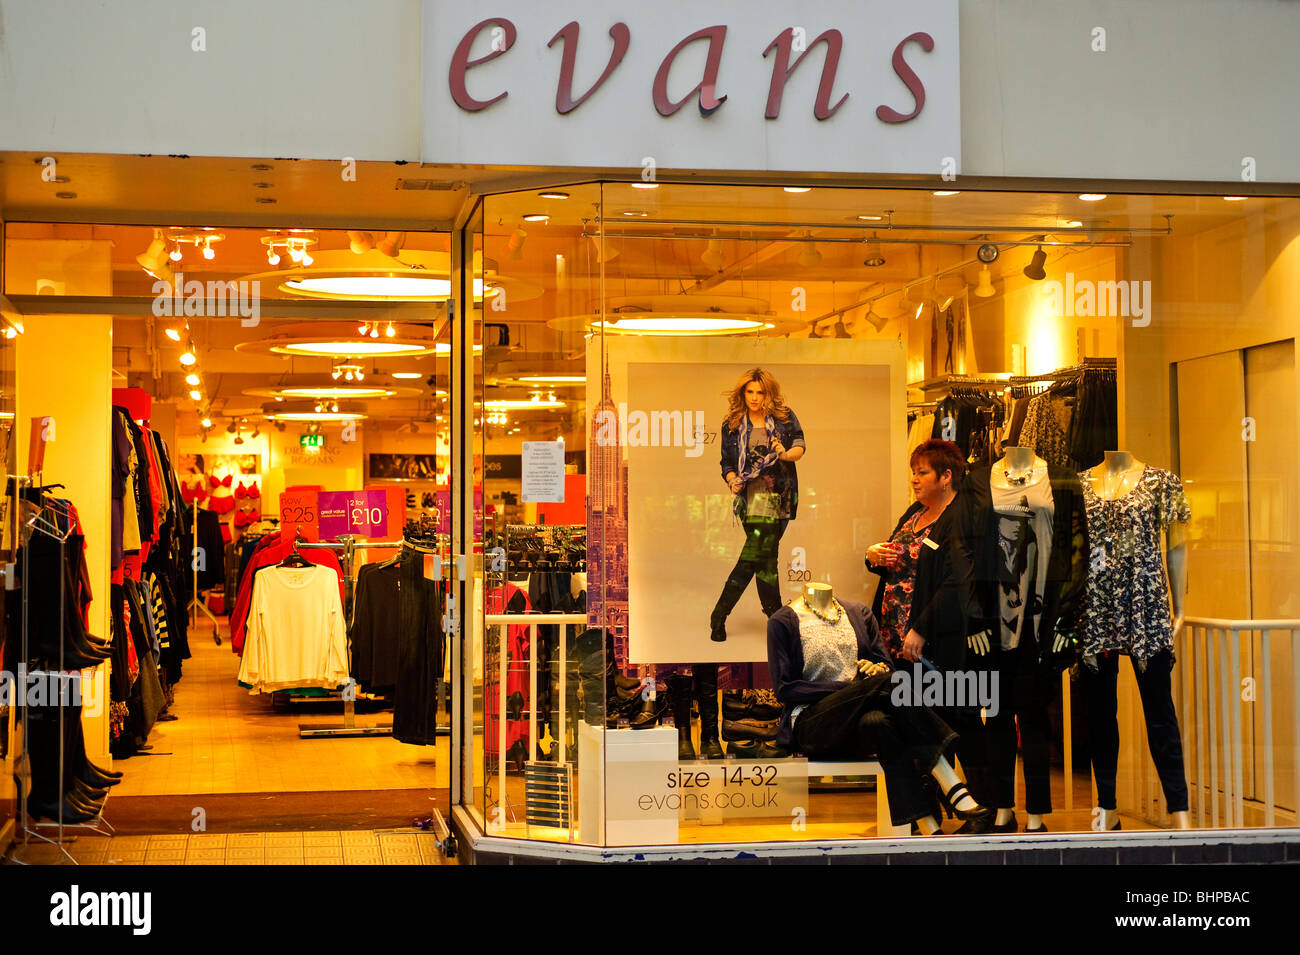 Evans Womens High Street Retail Clothes Shop Uk Stock